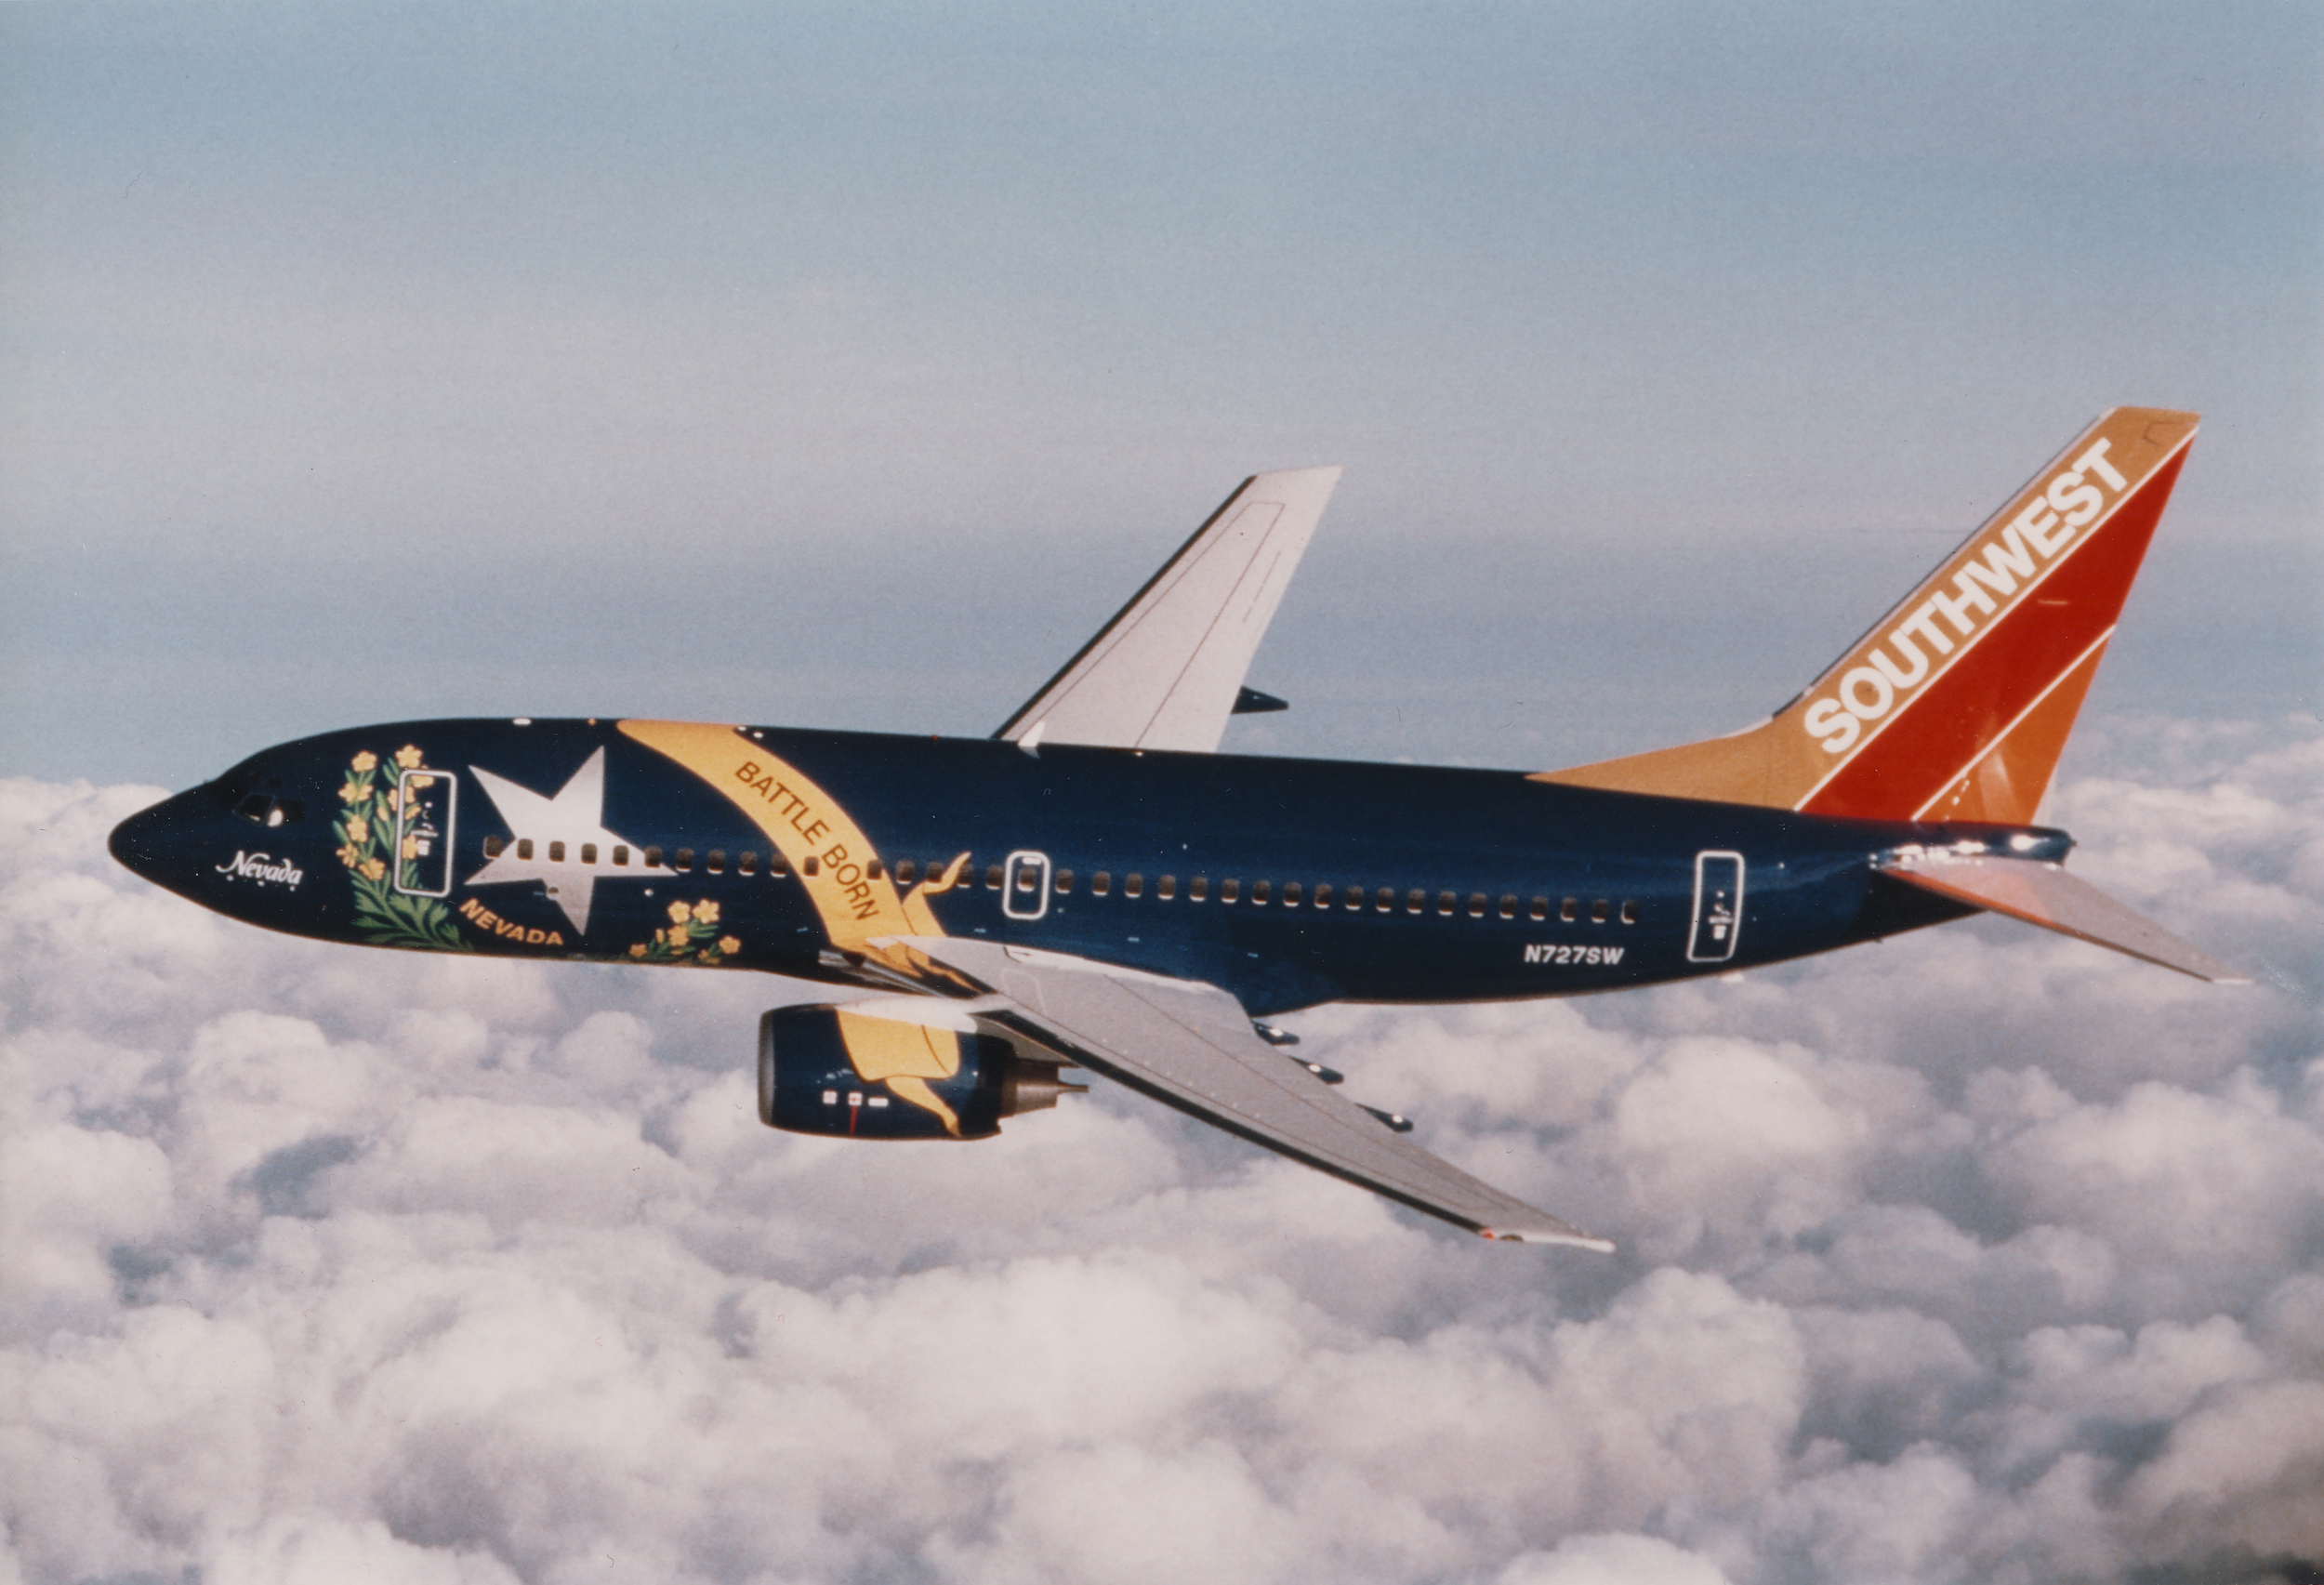 Nevada One ( N727SW), 1999. Picture: Southwest Airlines